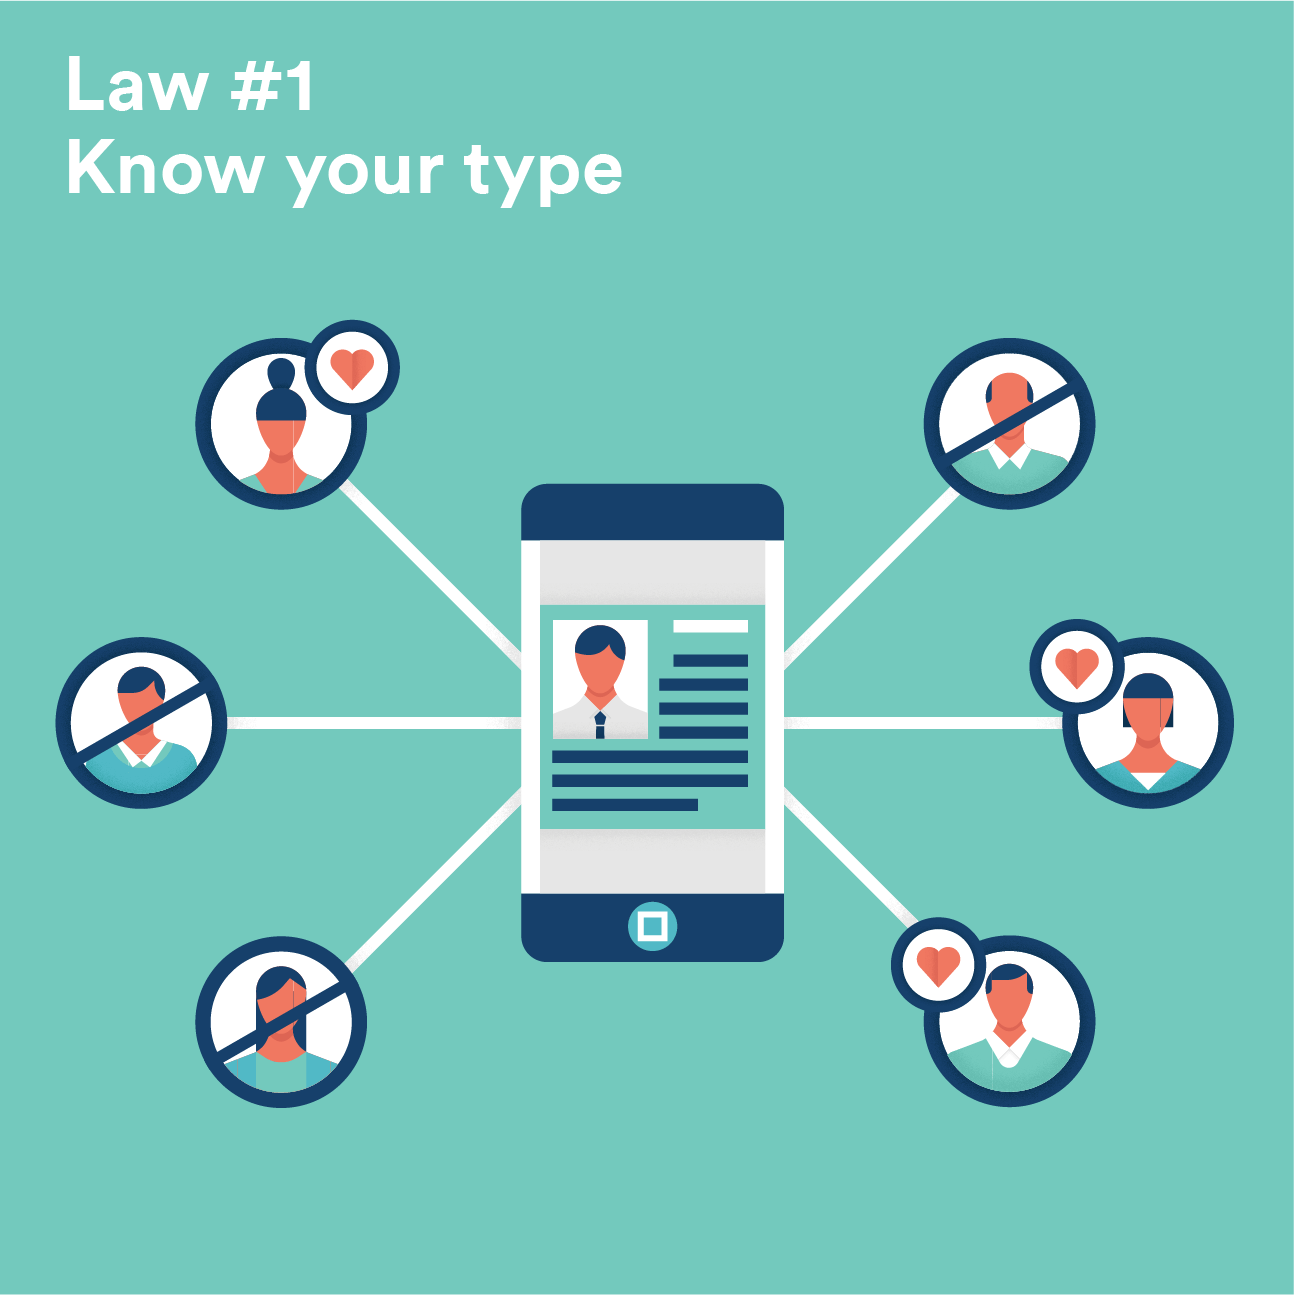 Law #1 - Know your type